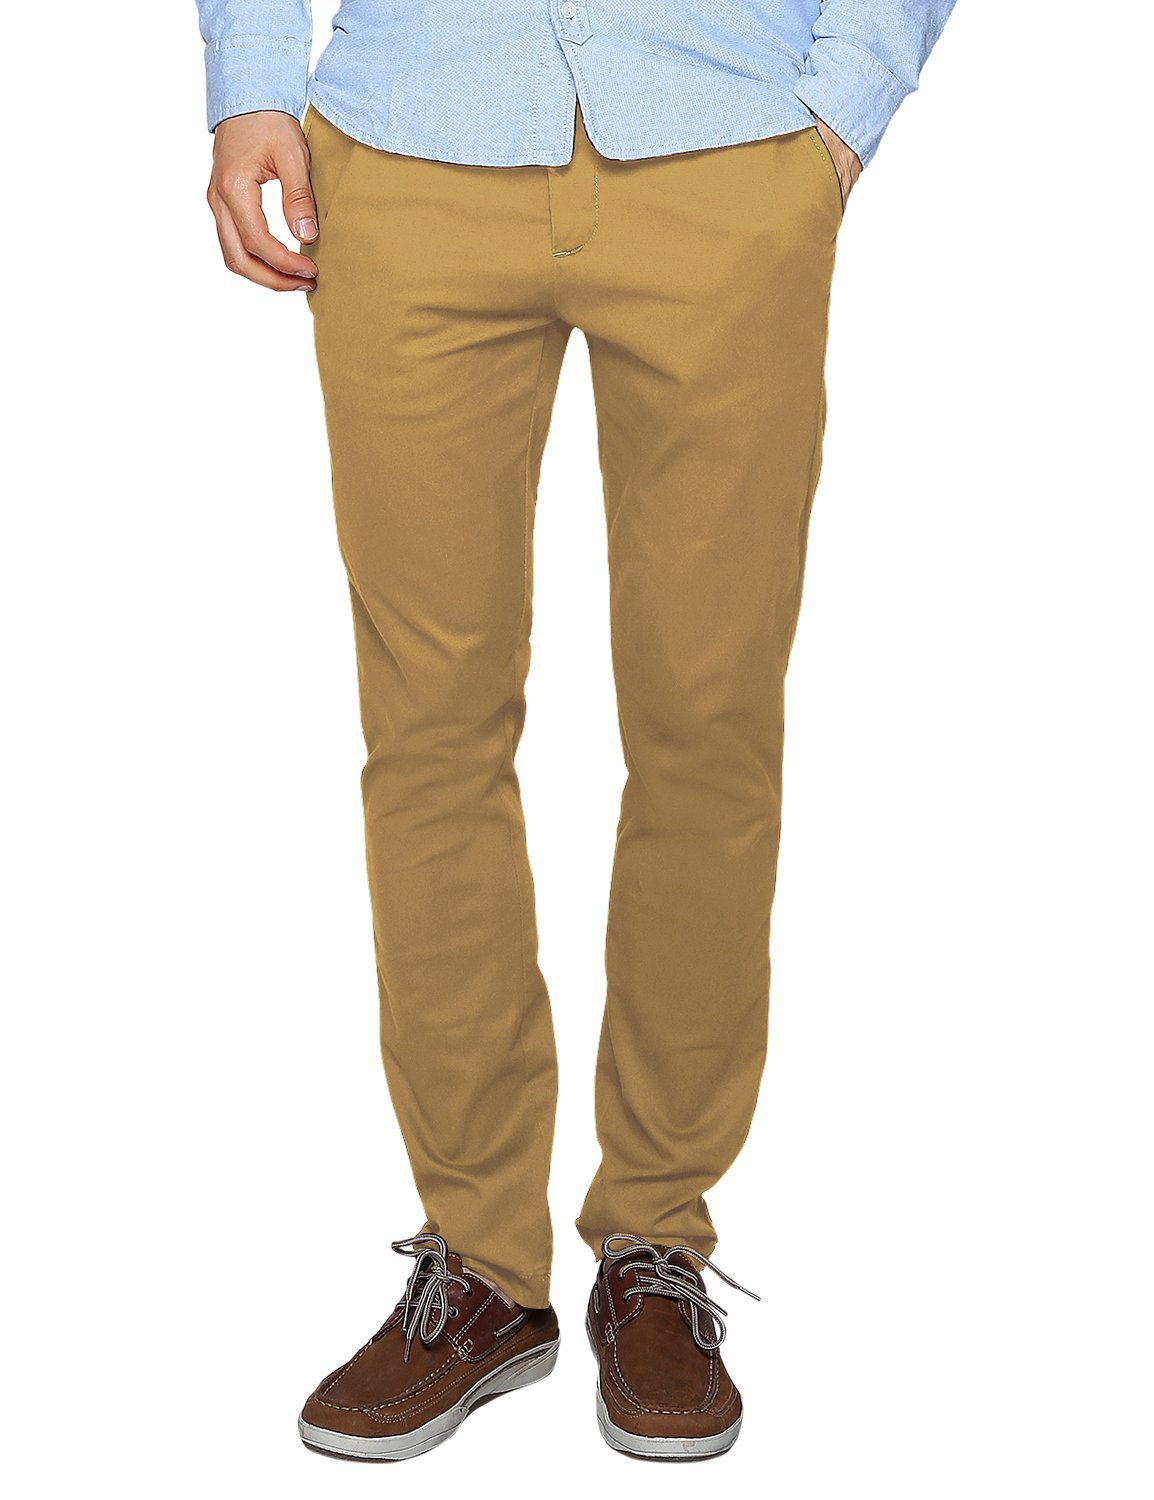 Match Men's Slim Tapered Stretchy Casual Pant (32, 8114 Khaki)